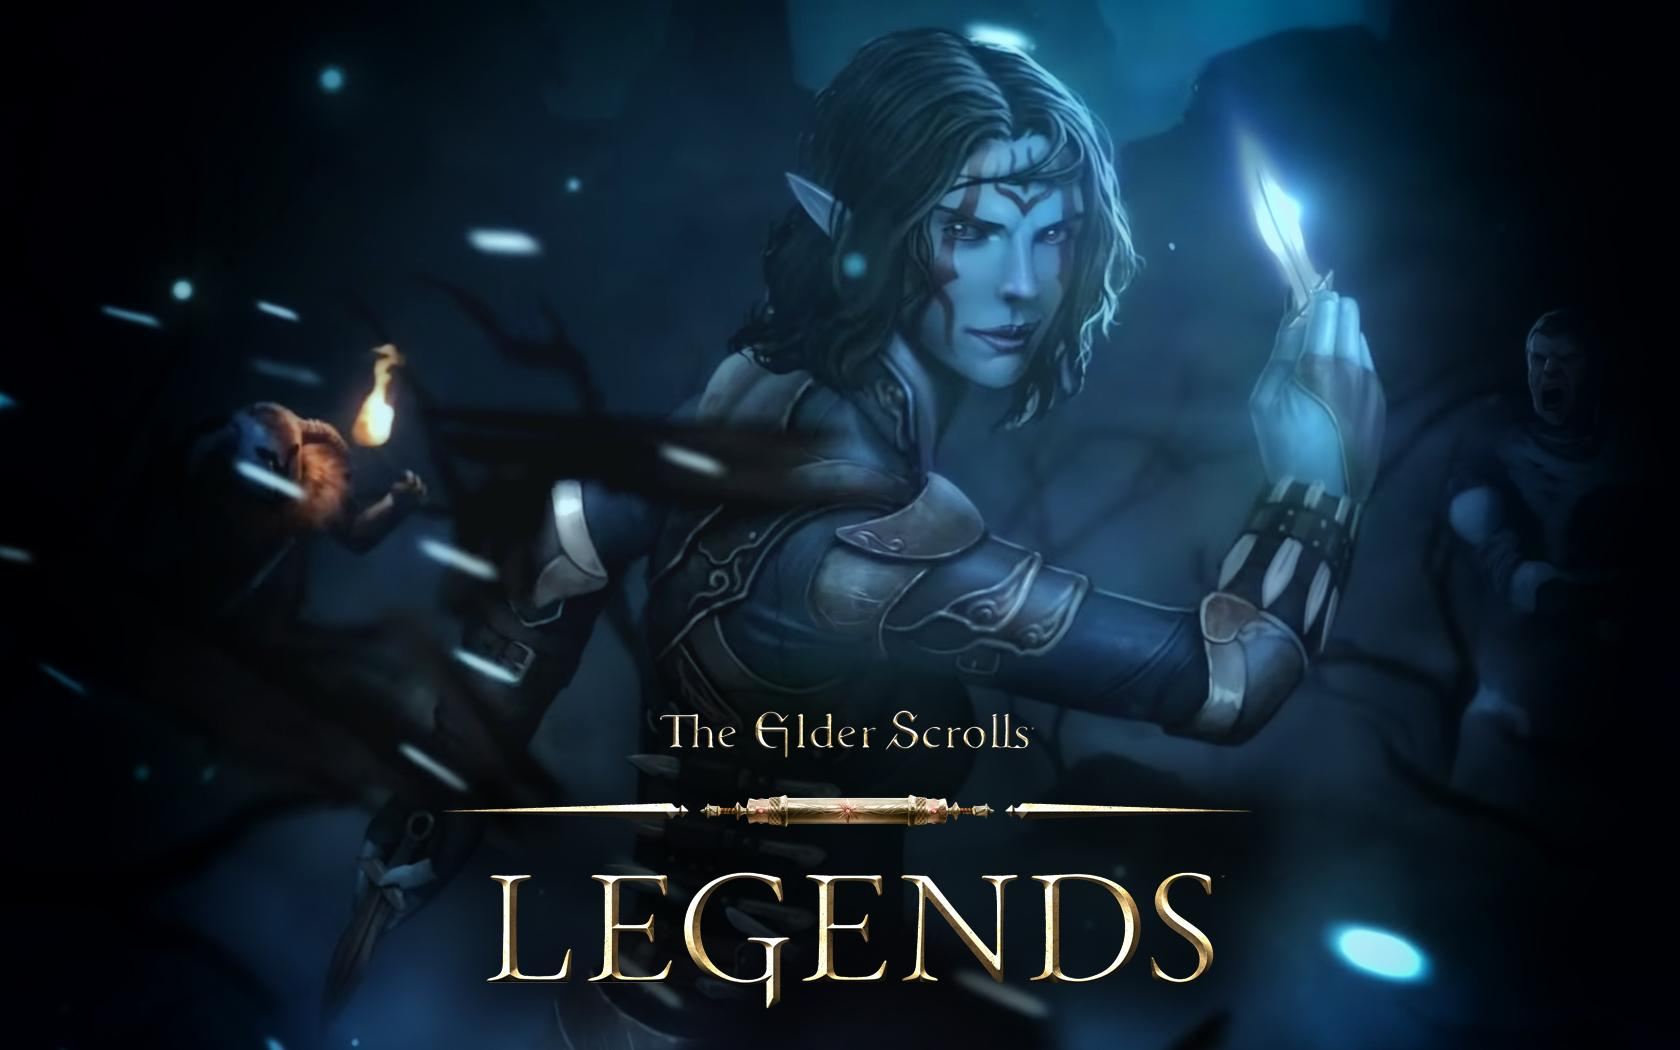 The Elder Scrolls: Legends ESL Europe's Go4 League dal 9 settembre